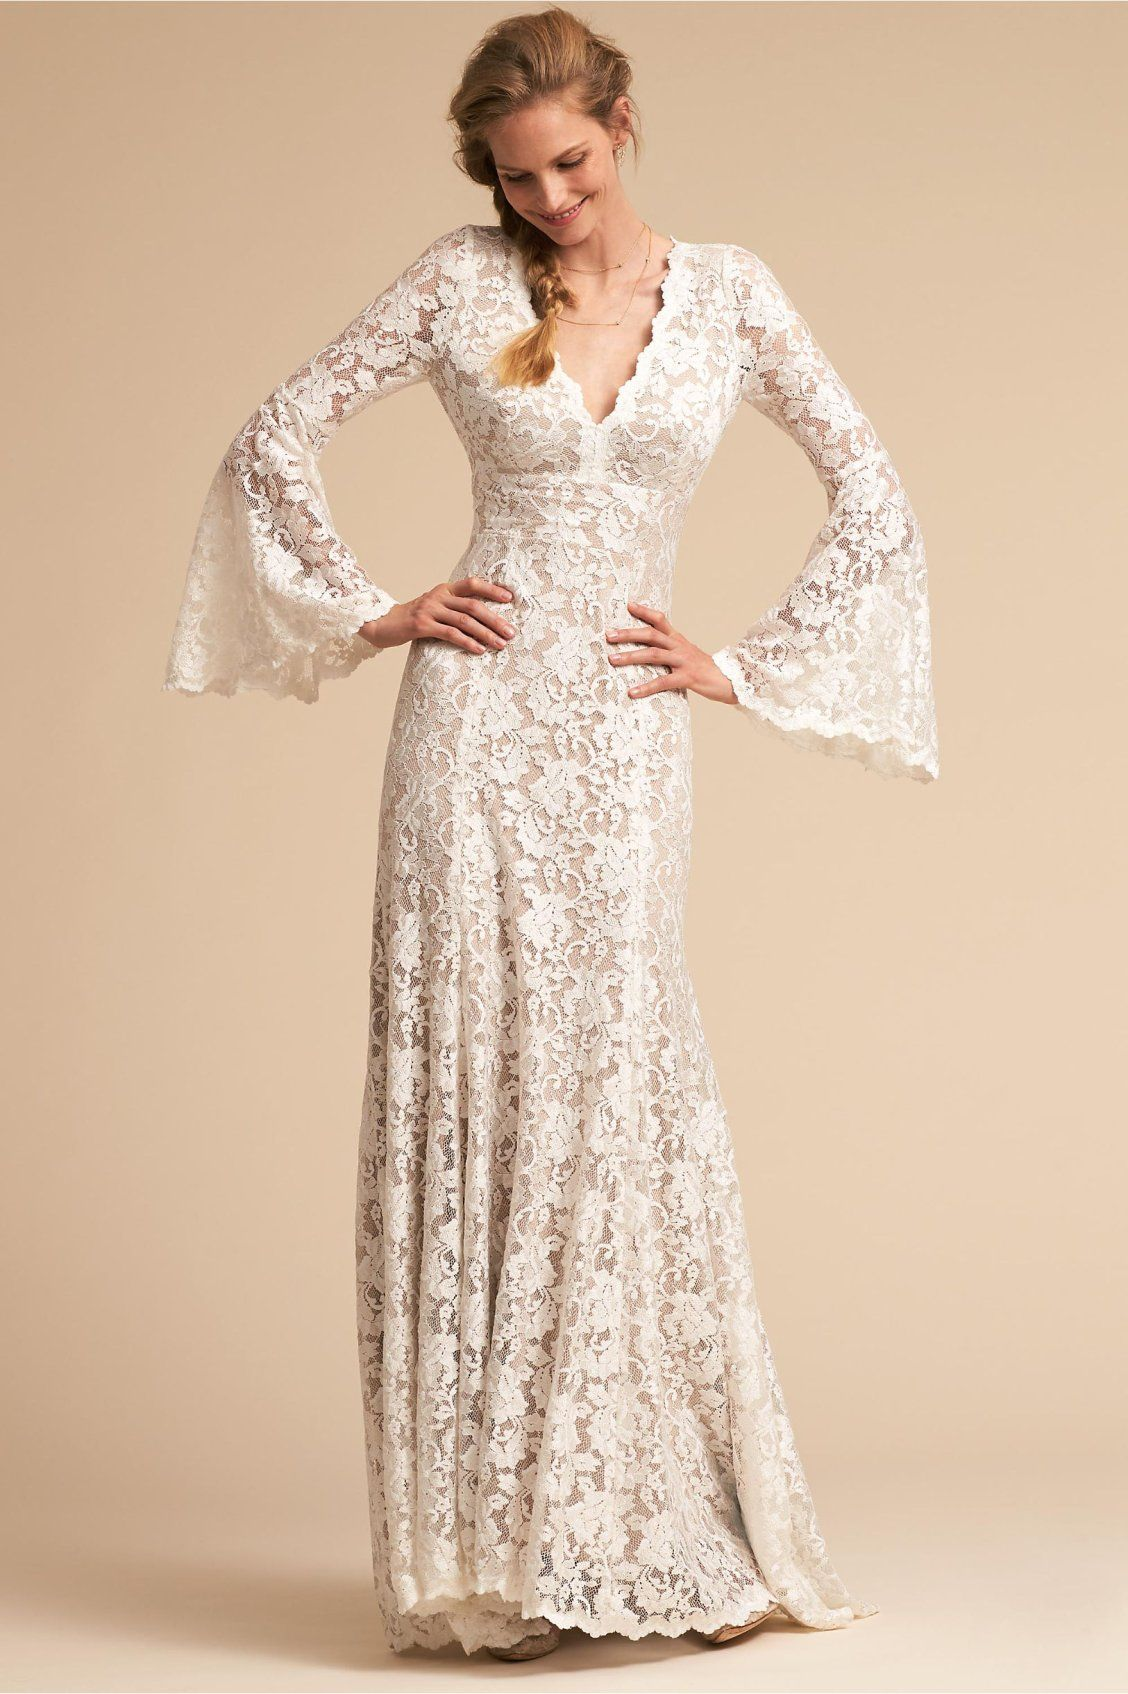 Long sleeved lace wedding dress  Lucca Gown from BHLDN  Not the wedding kind  Pinterest  Lucca